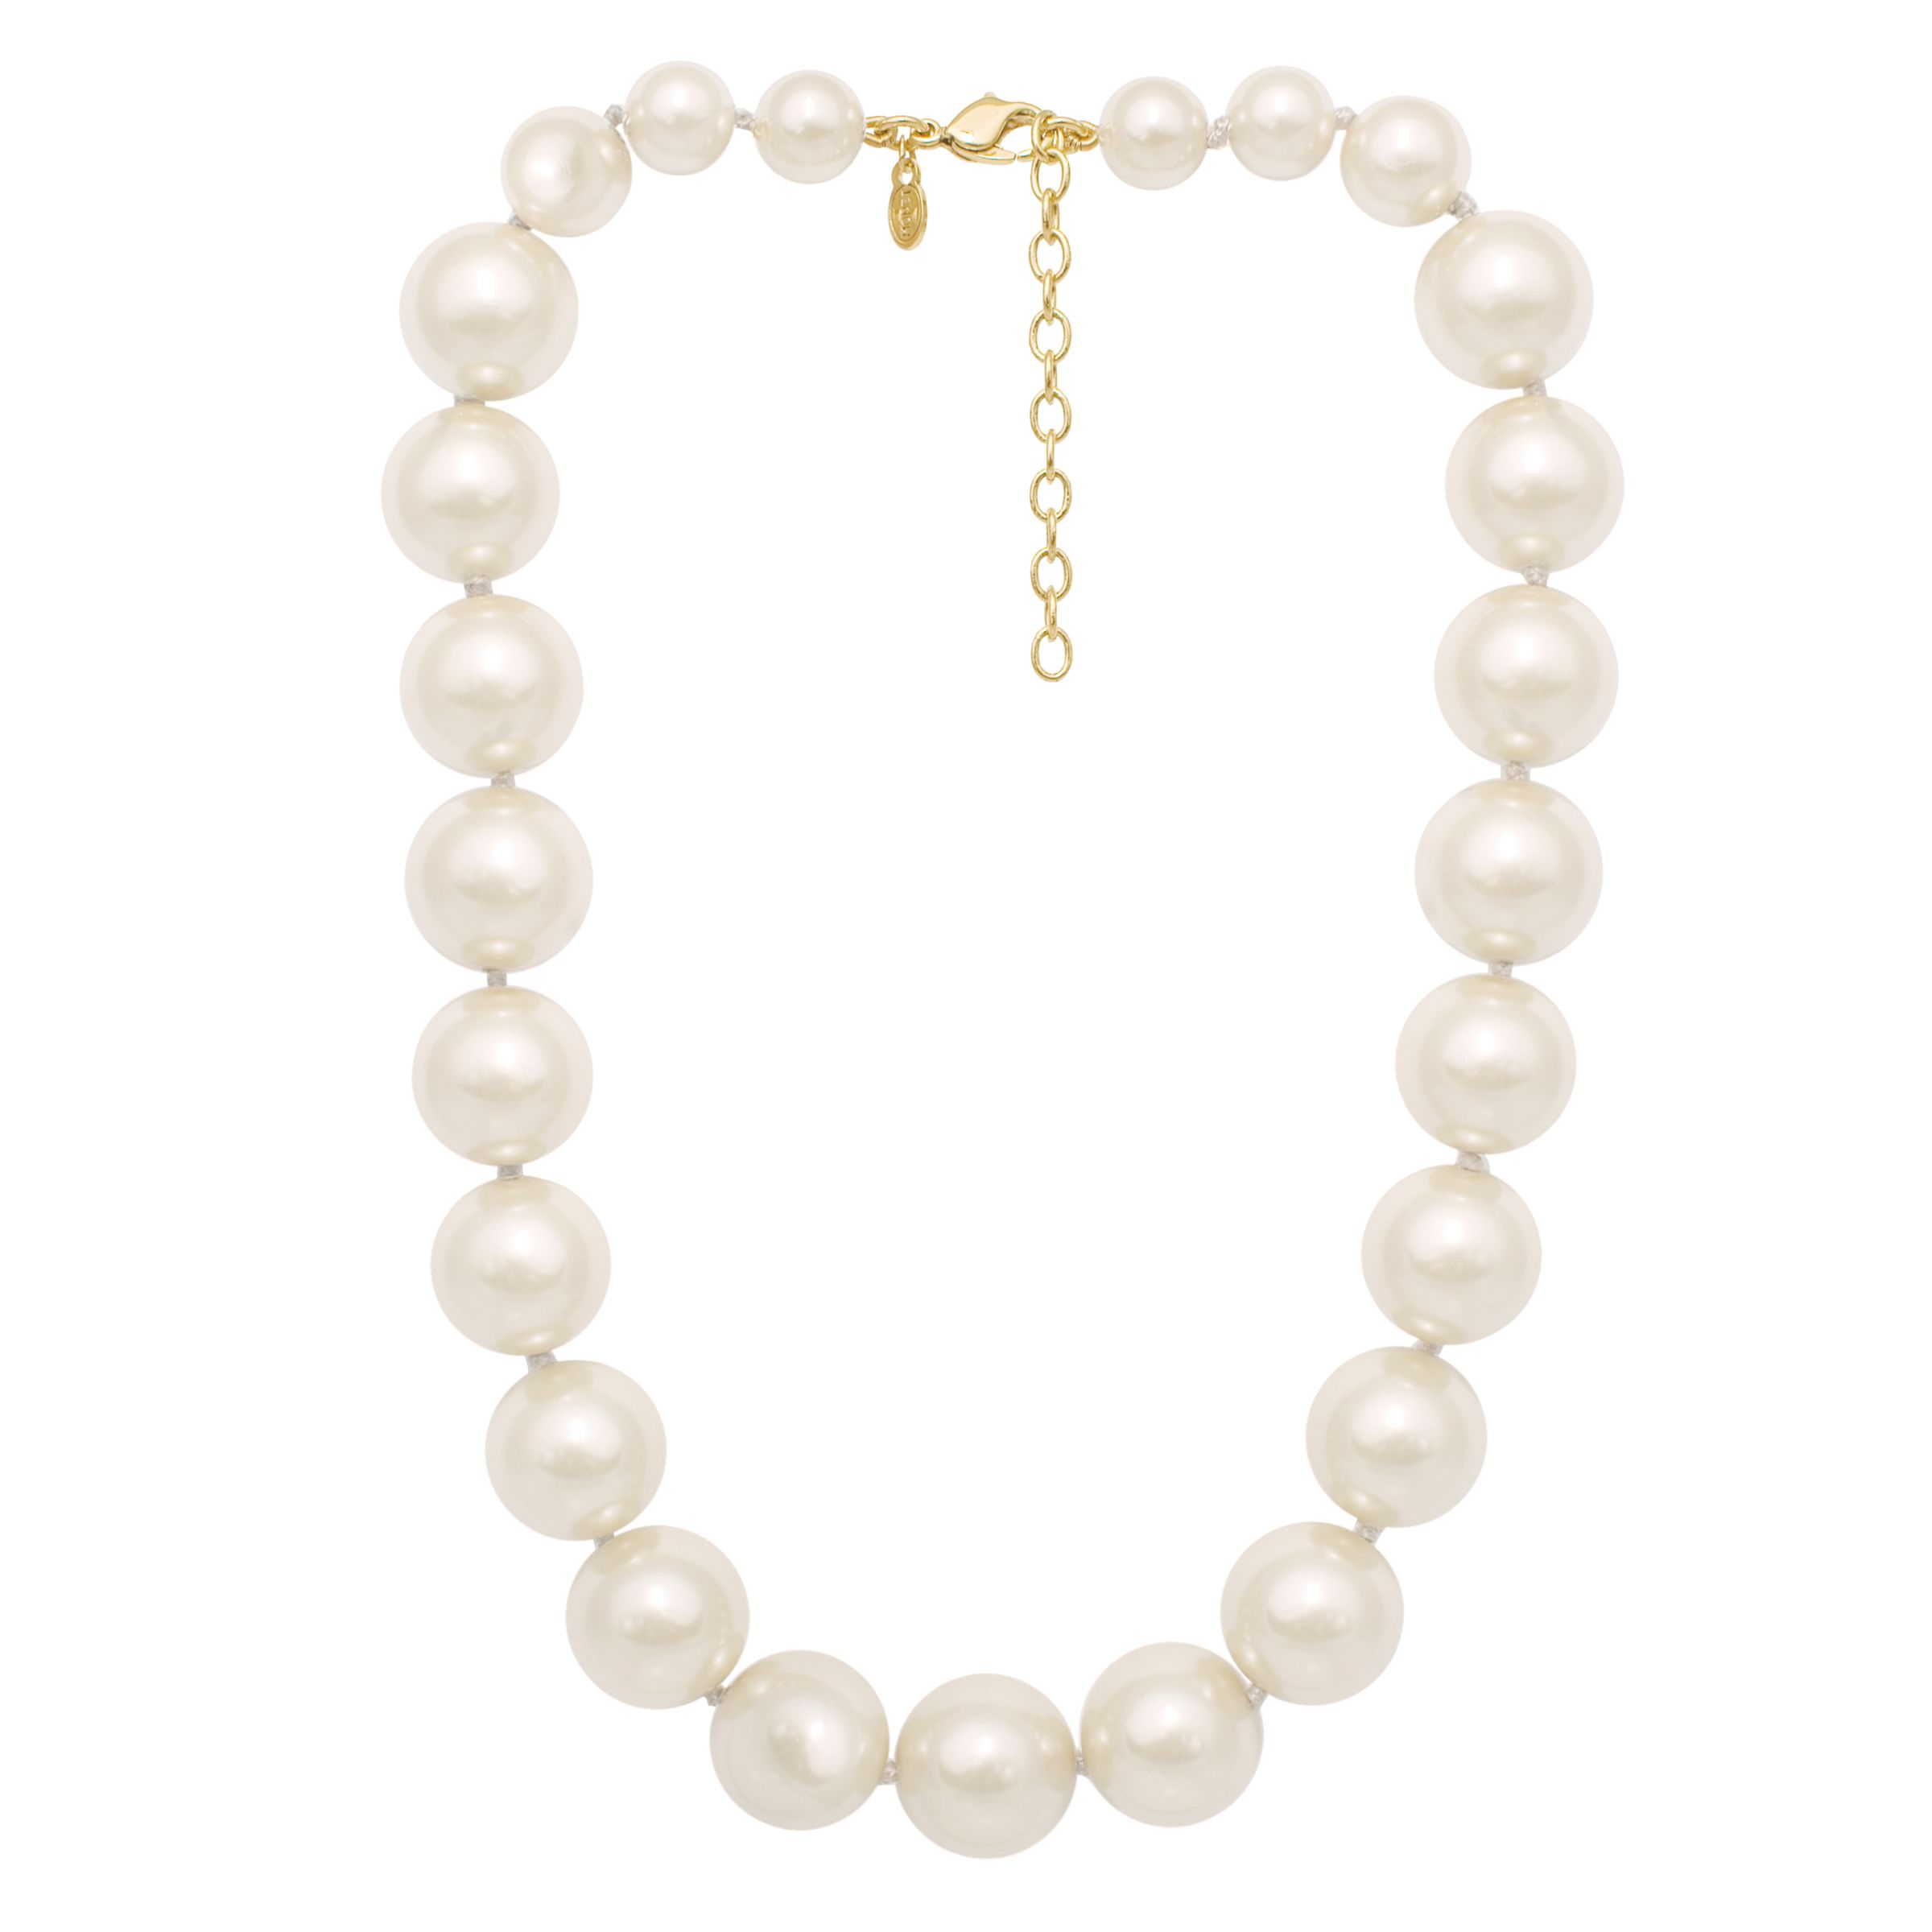 Monet Graduated Glass Pearl Necklace